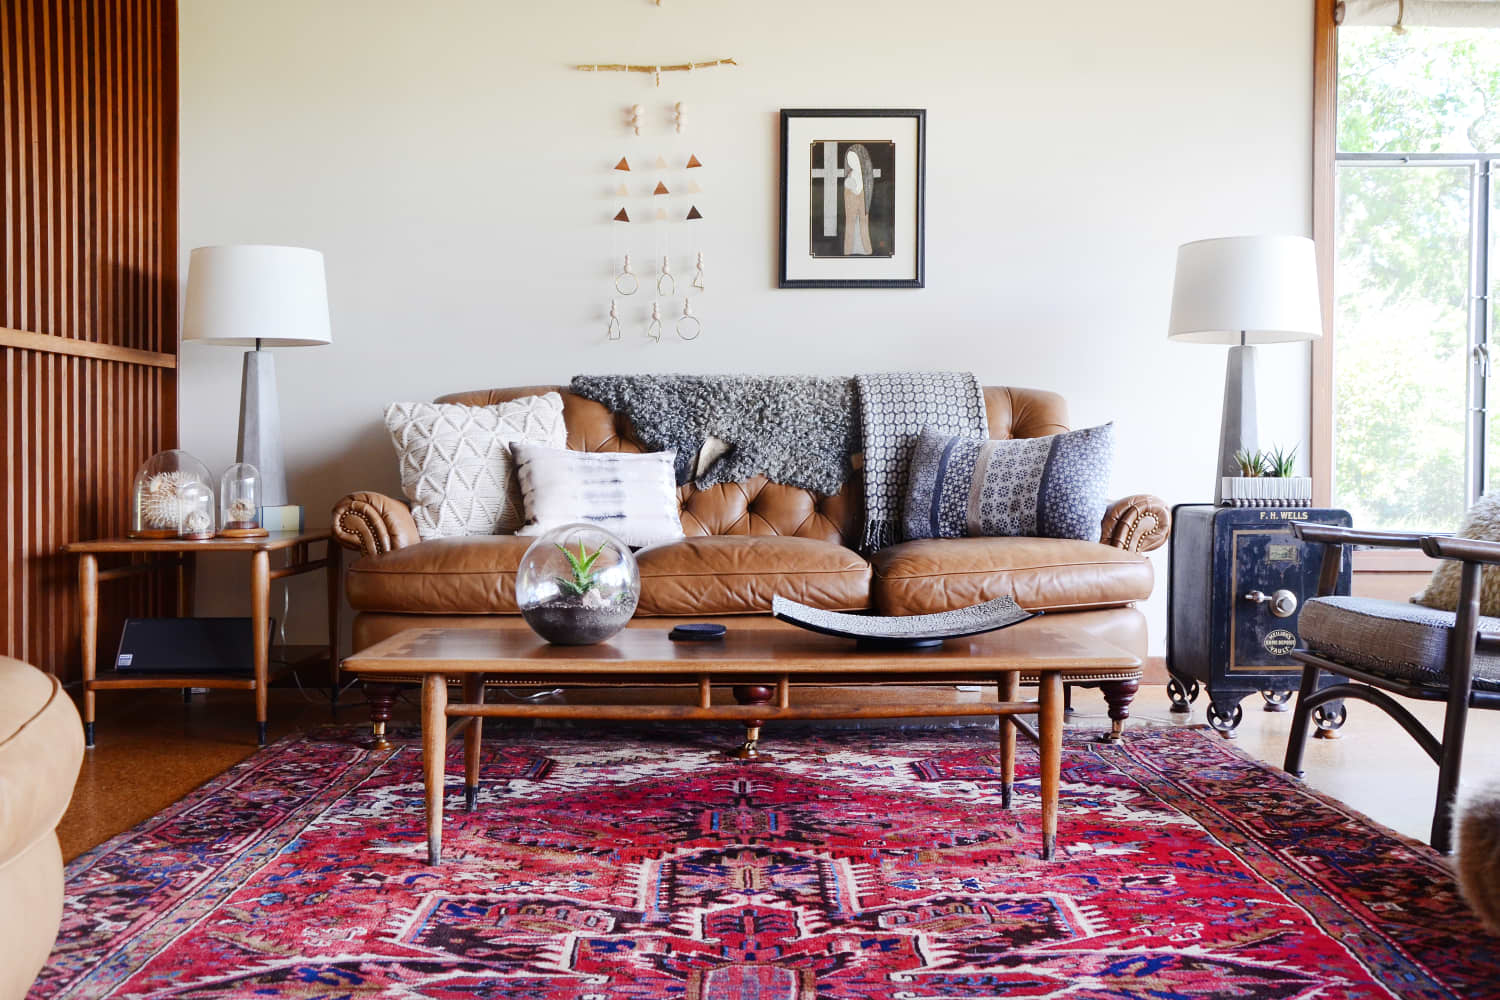 This Store Just Might Be the Best Kept Secret for Boho and Cottagecore Decor Finds Under $30